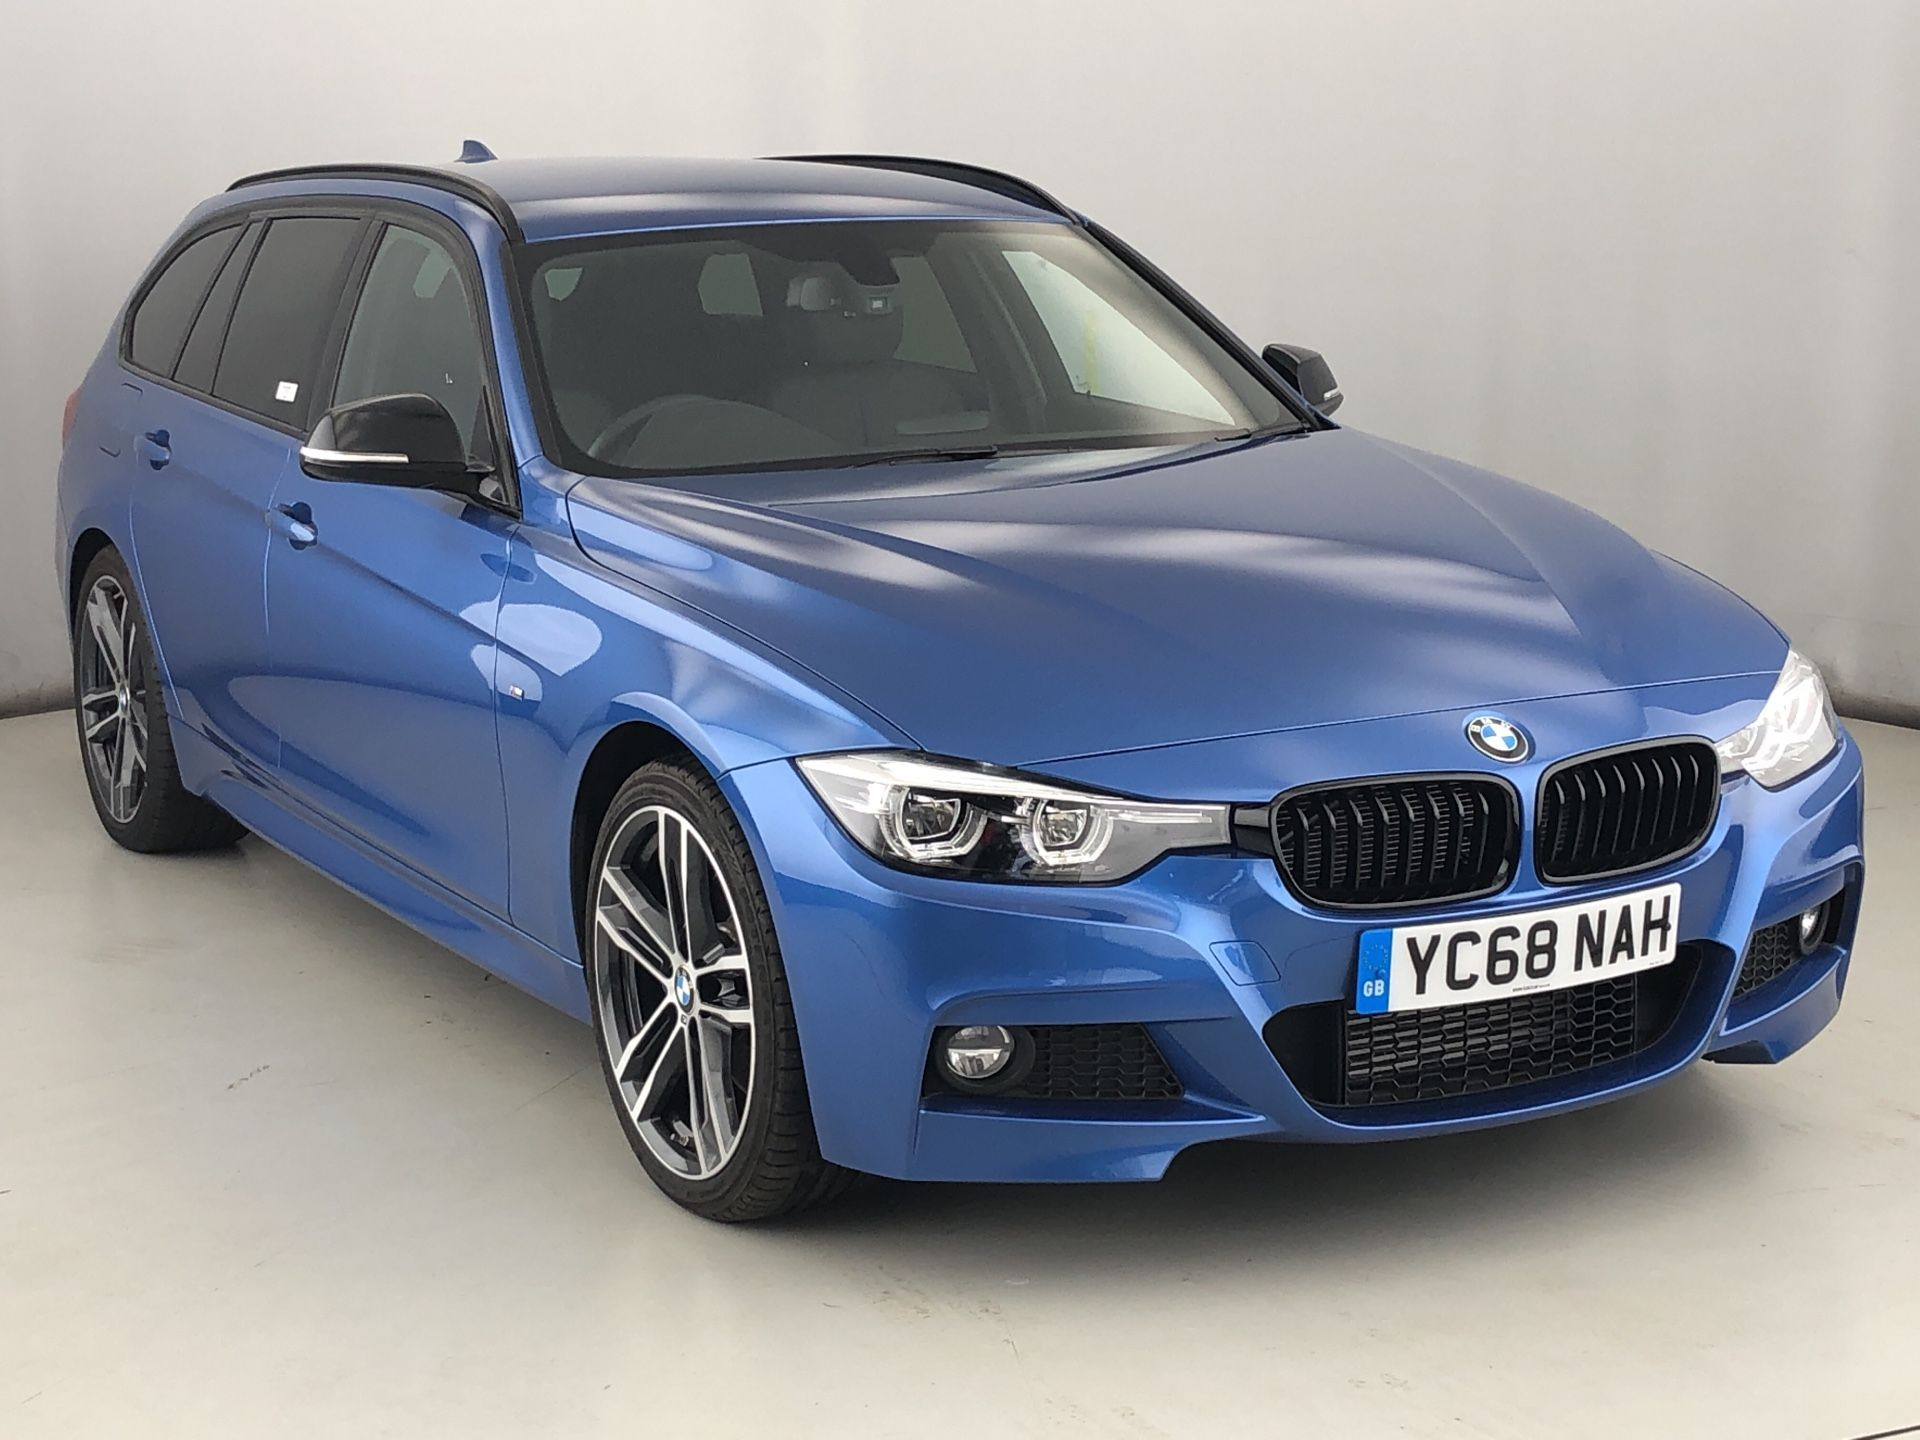 Image 1 - BMW 320d M Sport Shadow Edition Touring (YC68NAH)